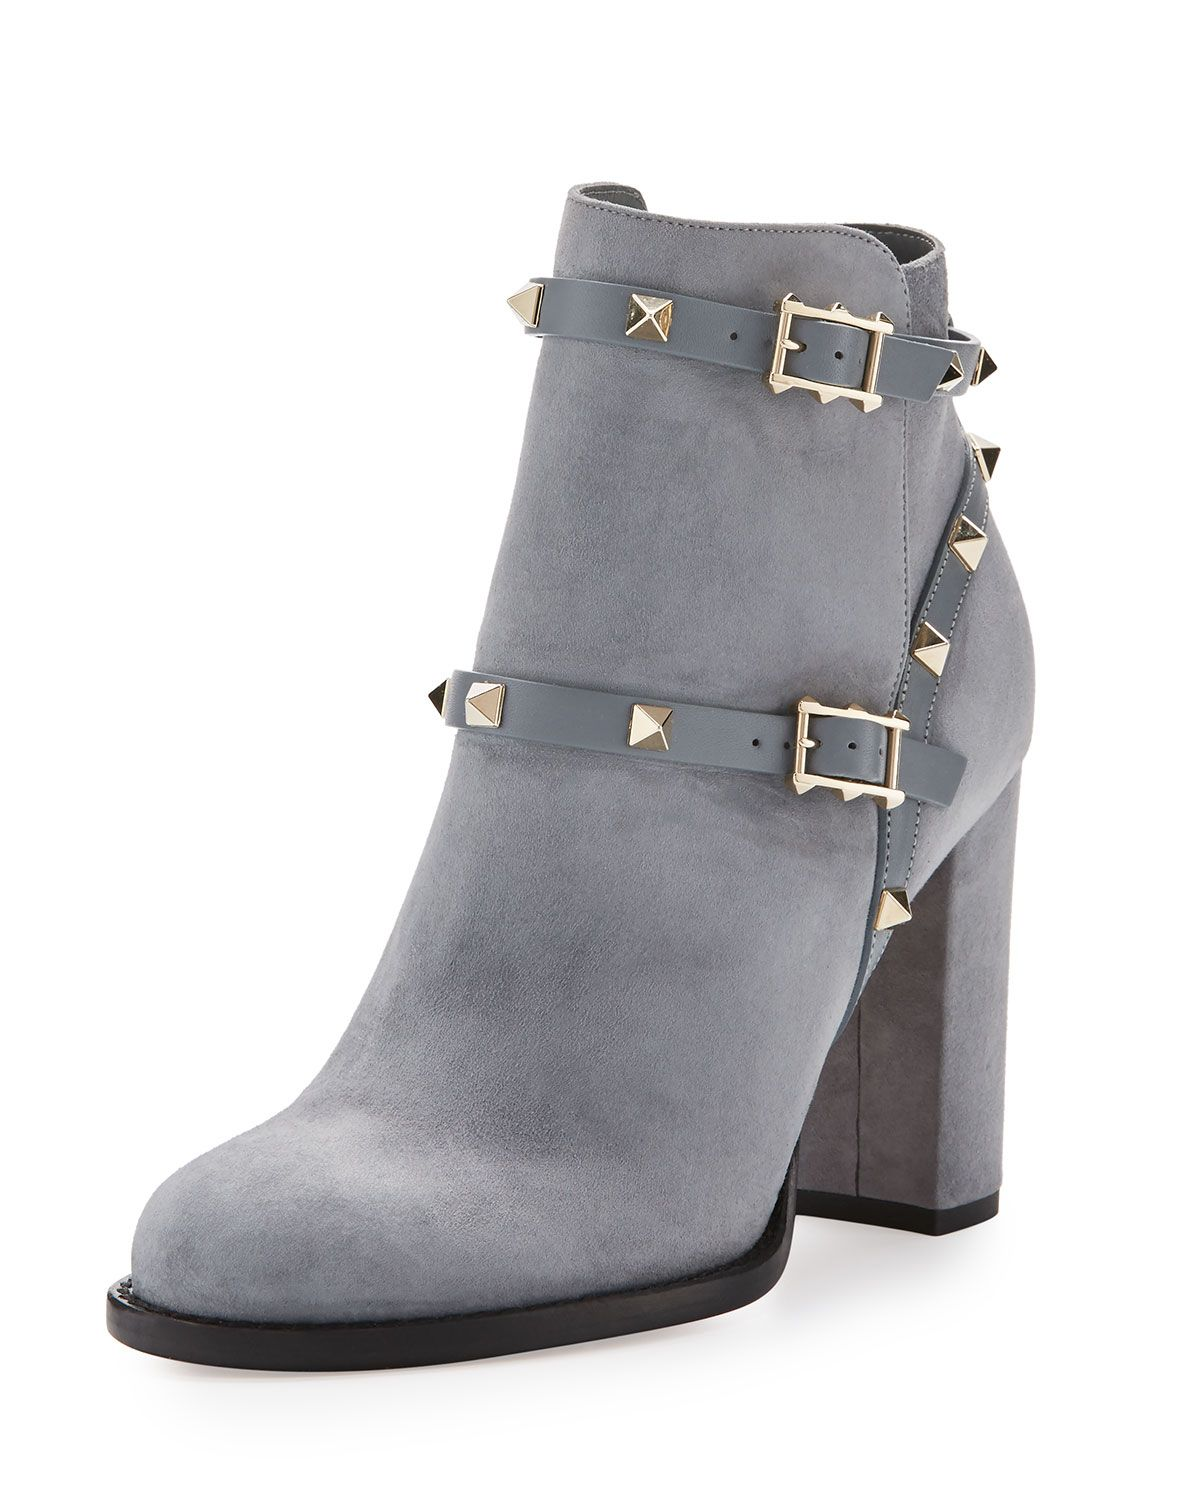 3e35f5e9f4491 Red Valentino Rockstud Suede 100mm Ankle Boot, Light Gray, Light Grey